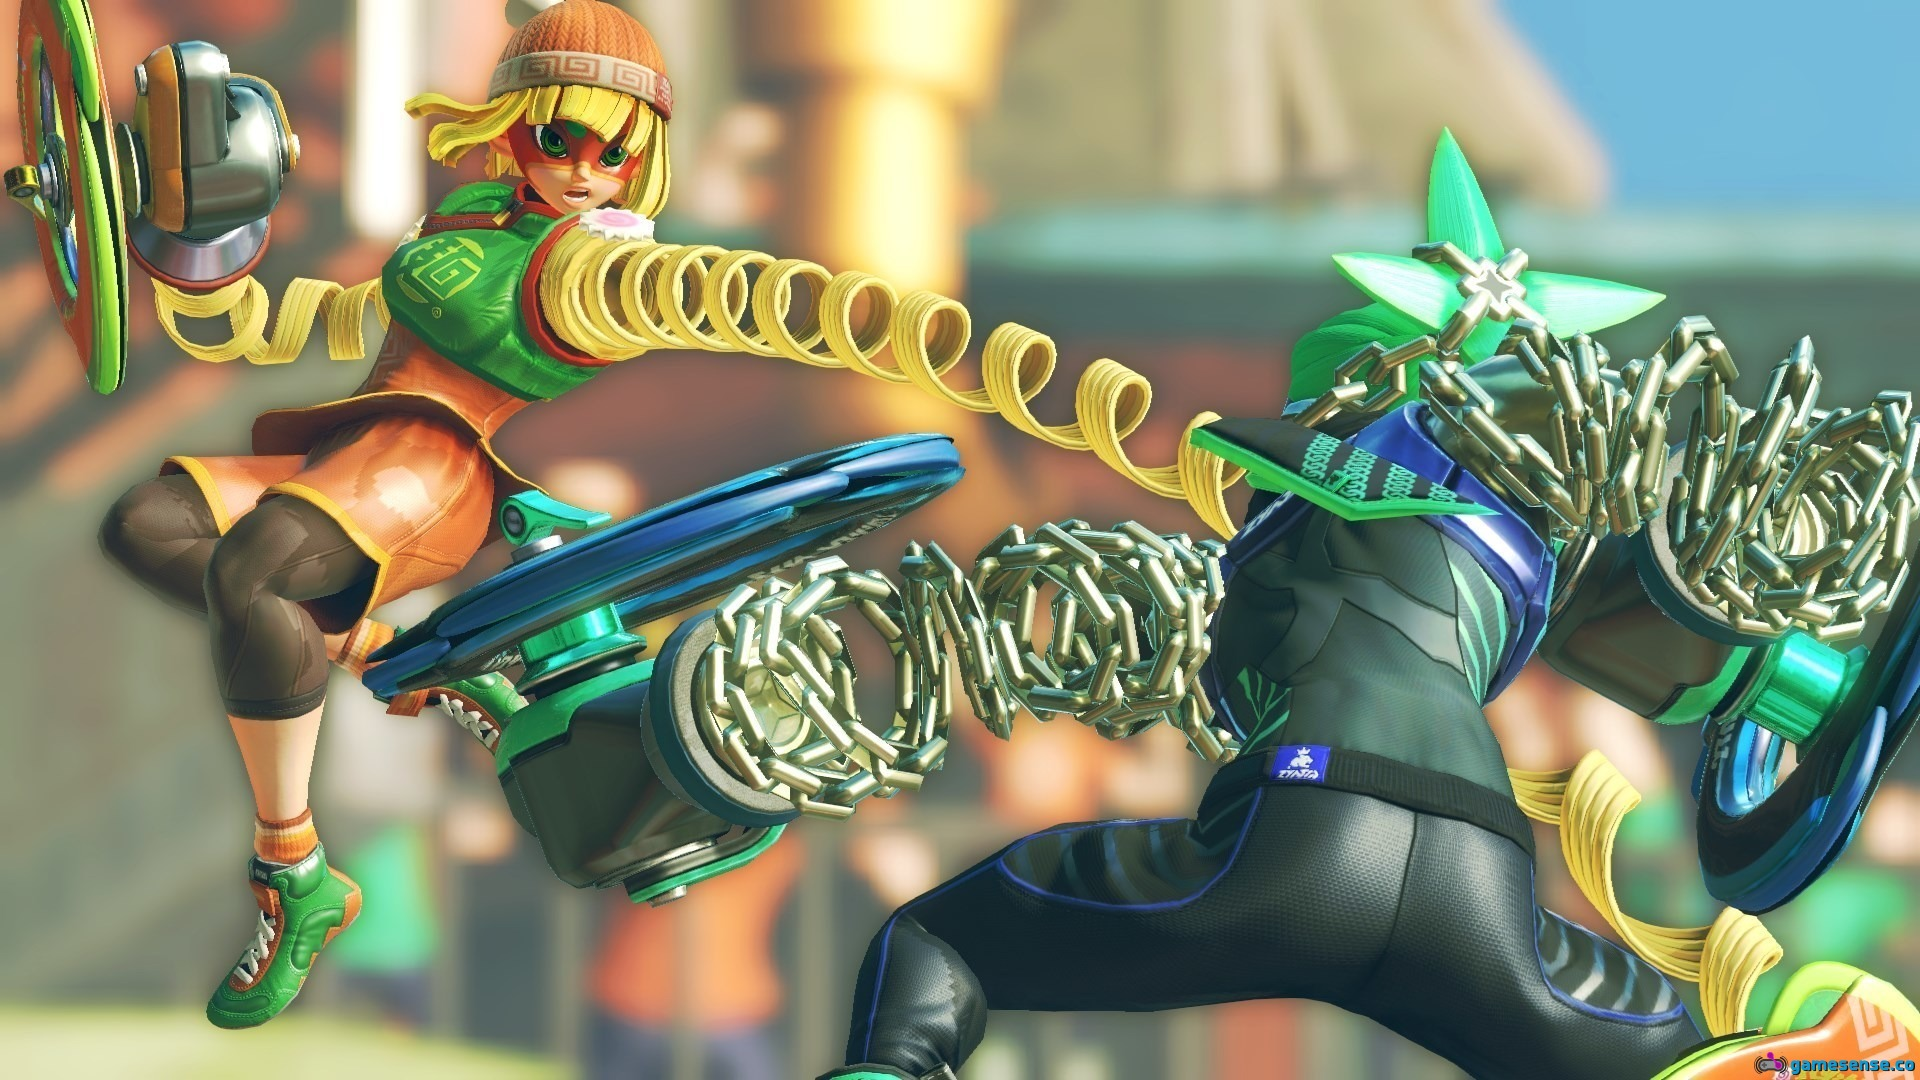 Arms Update 1.1.0 Released, Adds LAN Play, Fixes, More - Niche Gamer